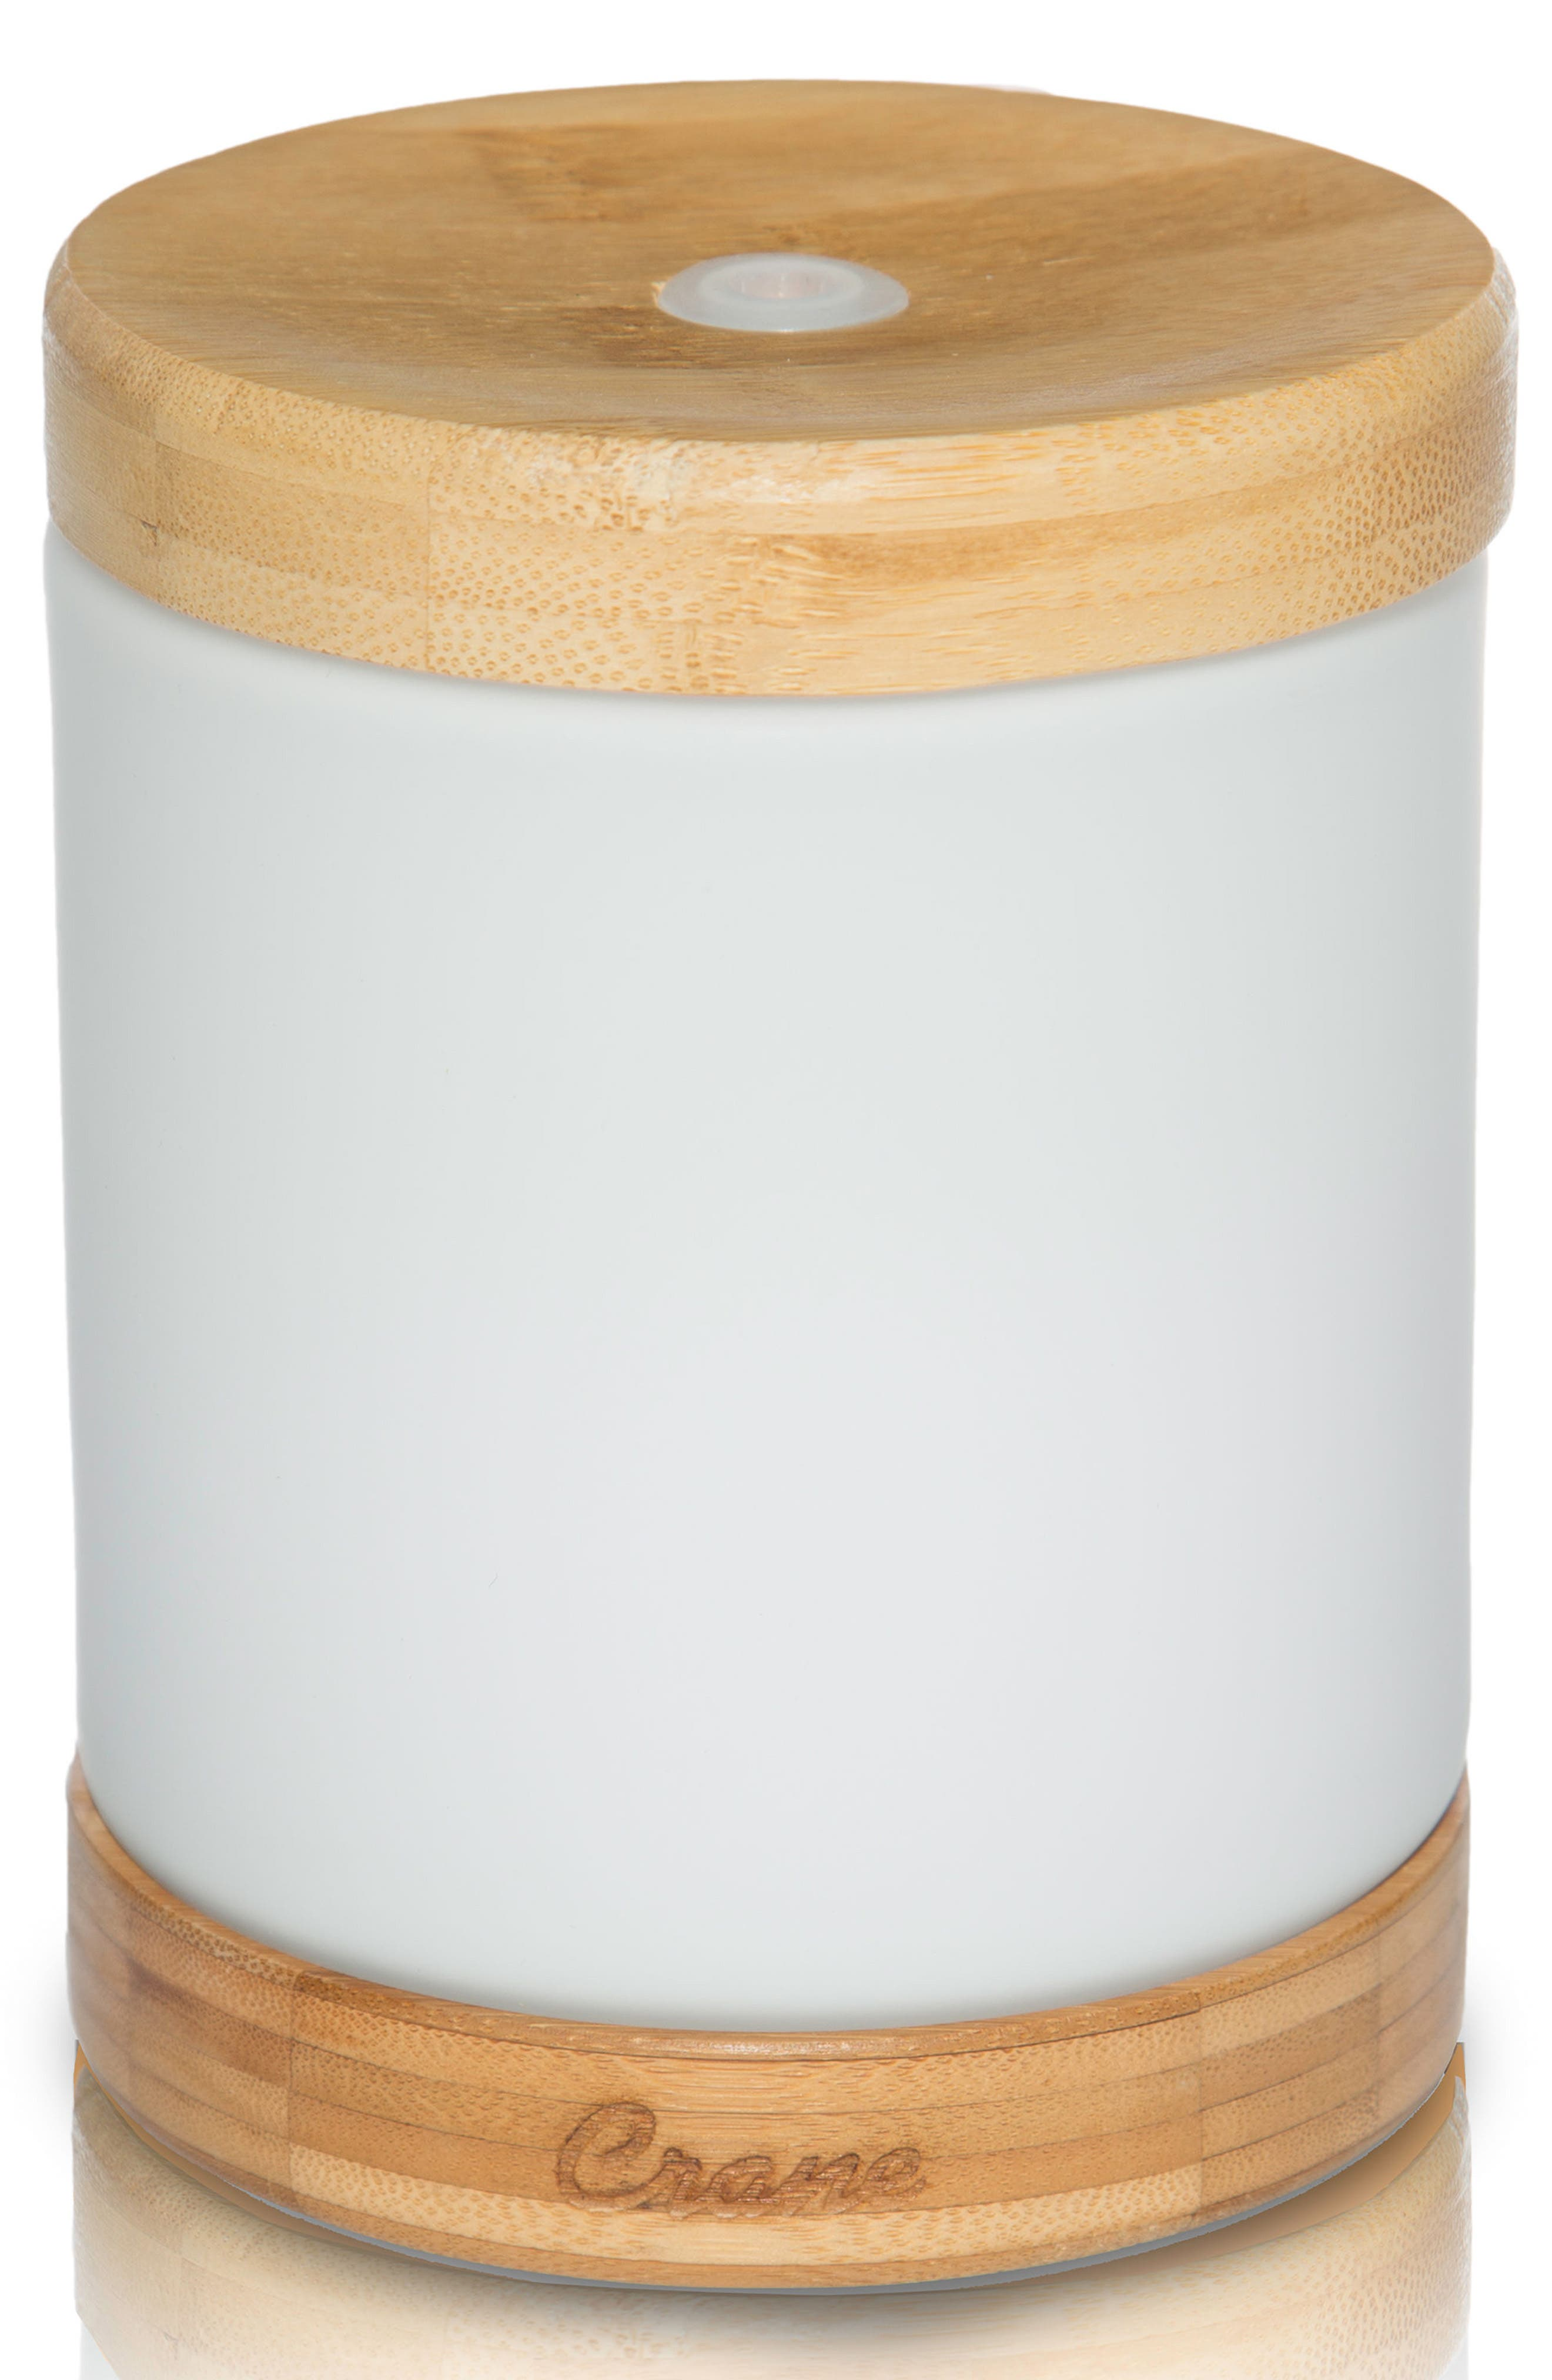 CRANE AIR Ultrasonic Cool Mist Soothing Aroma Diffuser, Main, color, WHITE